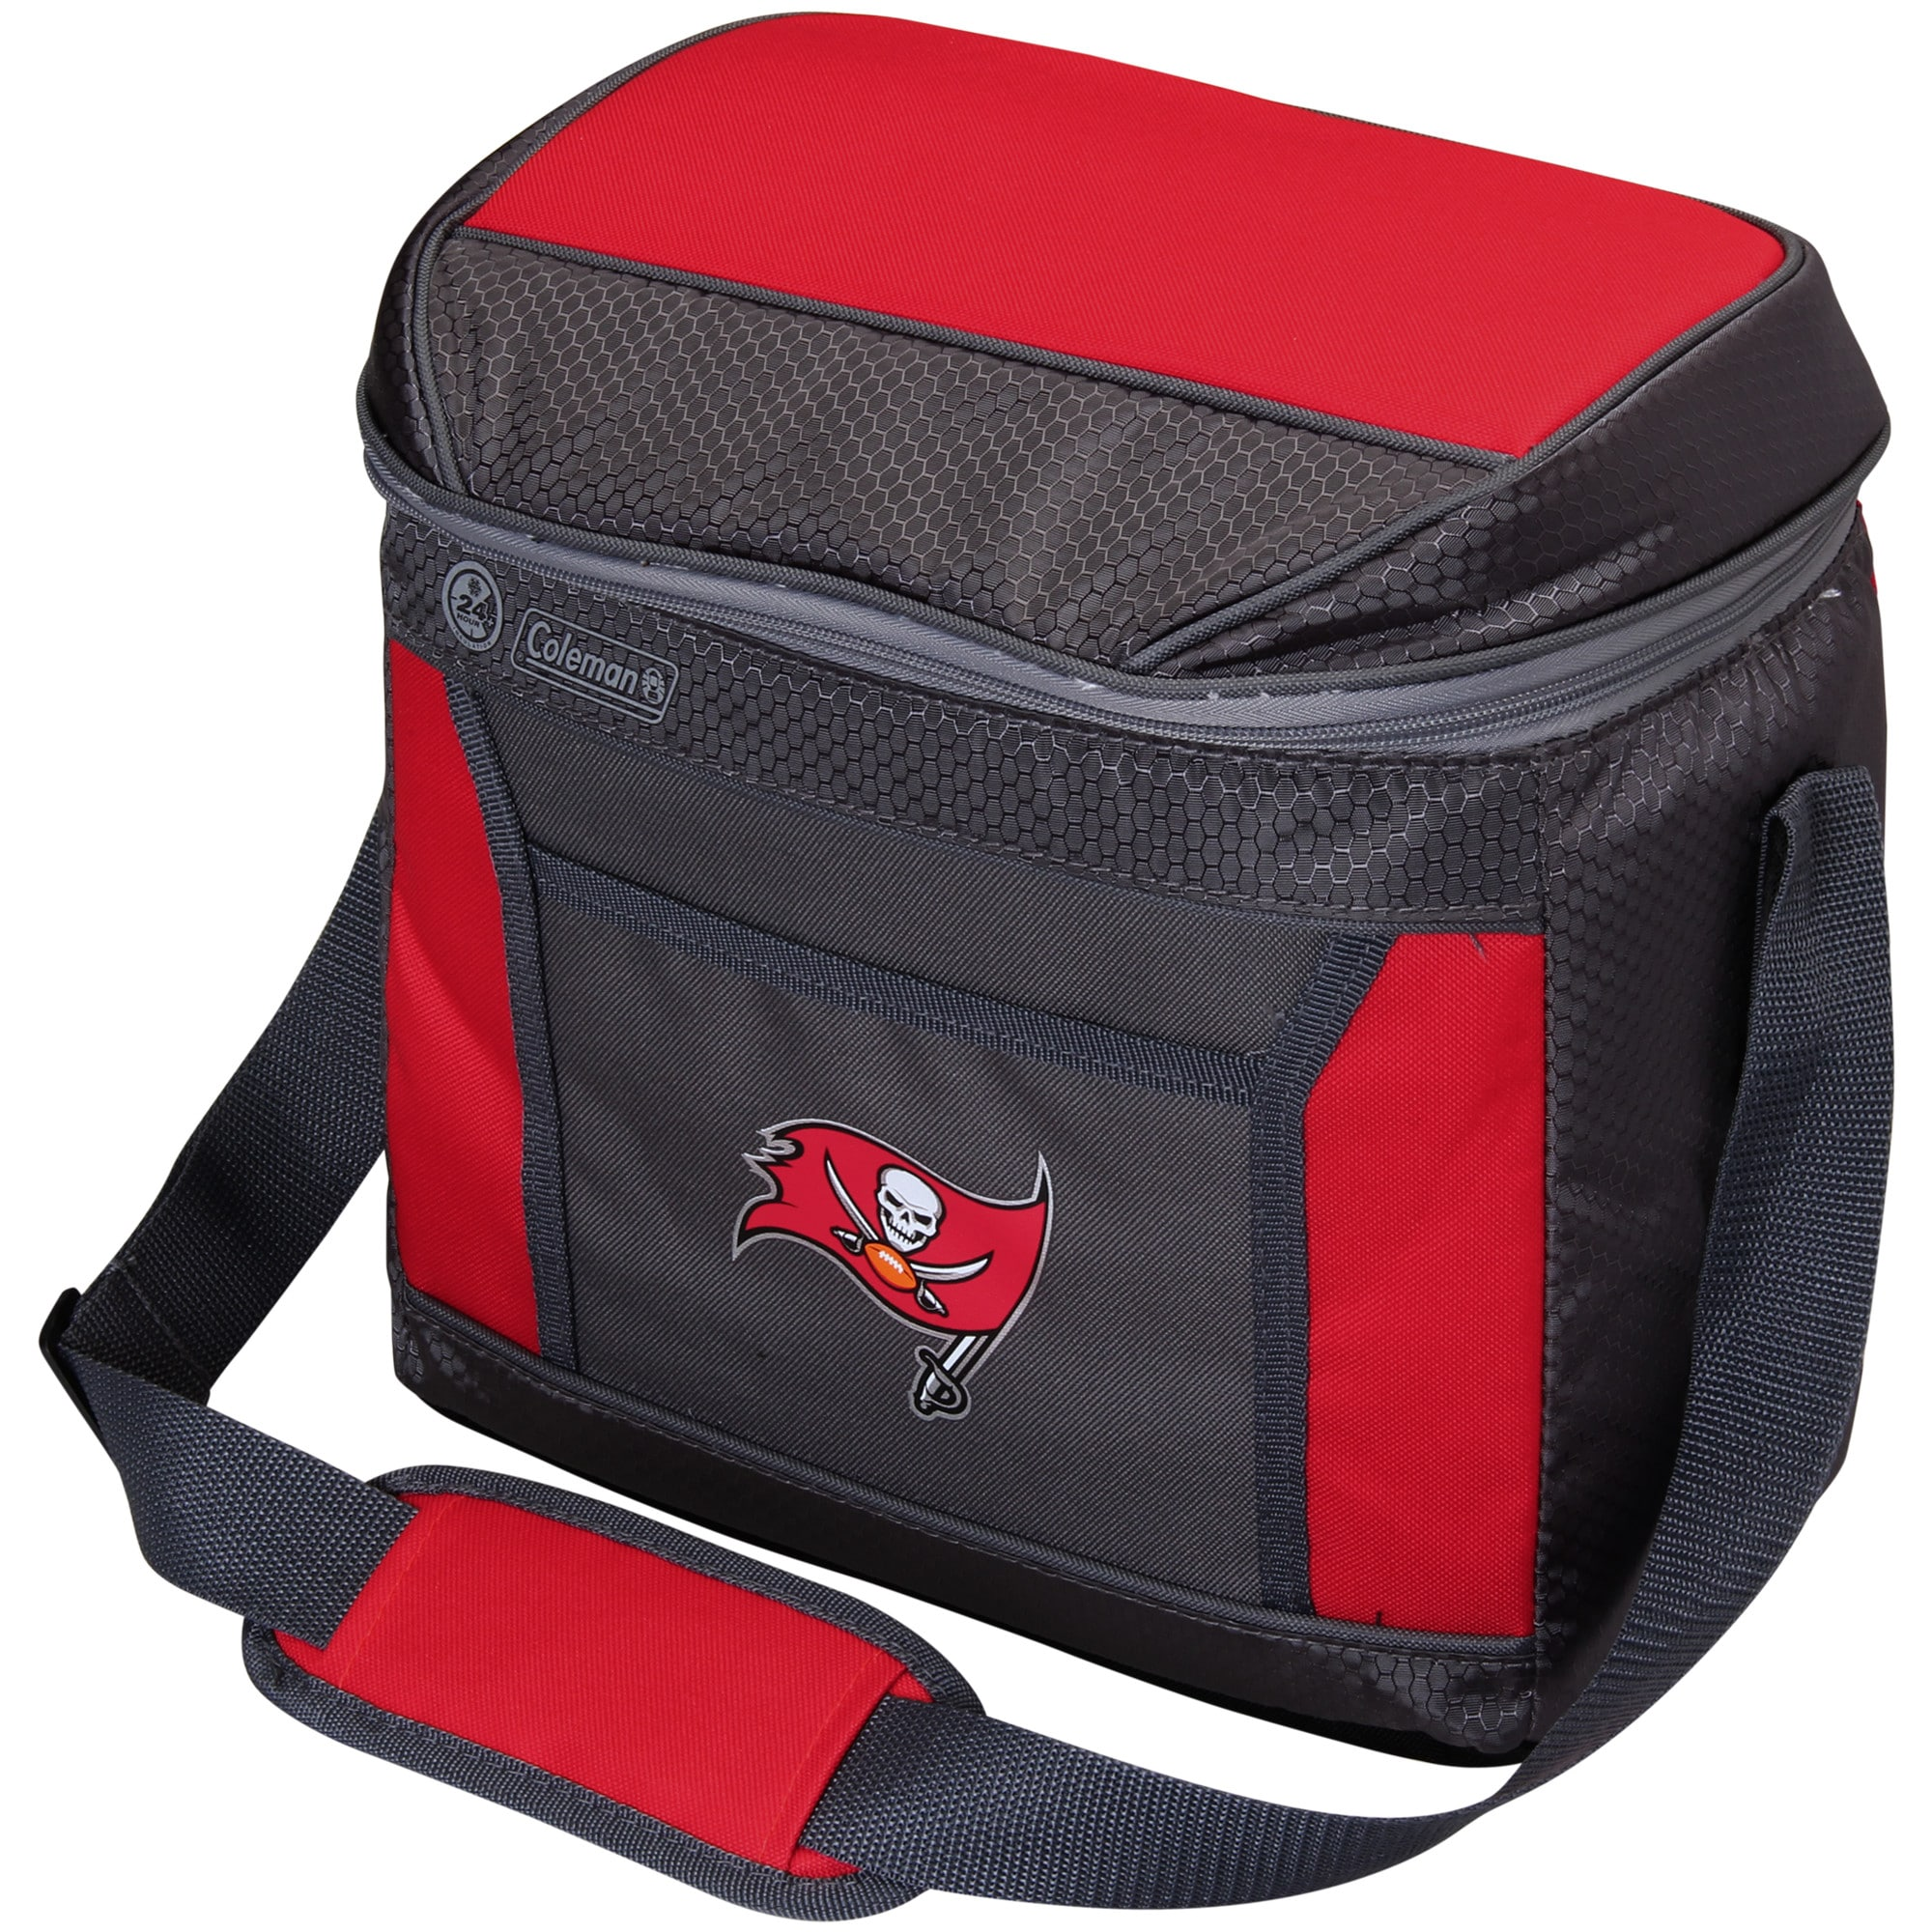 Tampa Bay Buccaneers Coleman 16-Can 24-Hour Soft-Sided Cooler